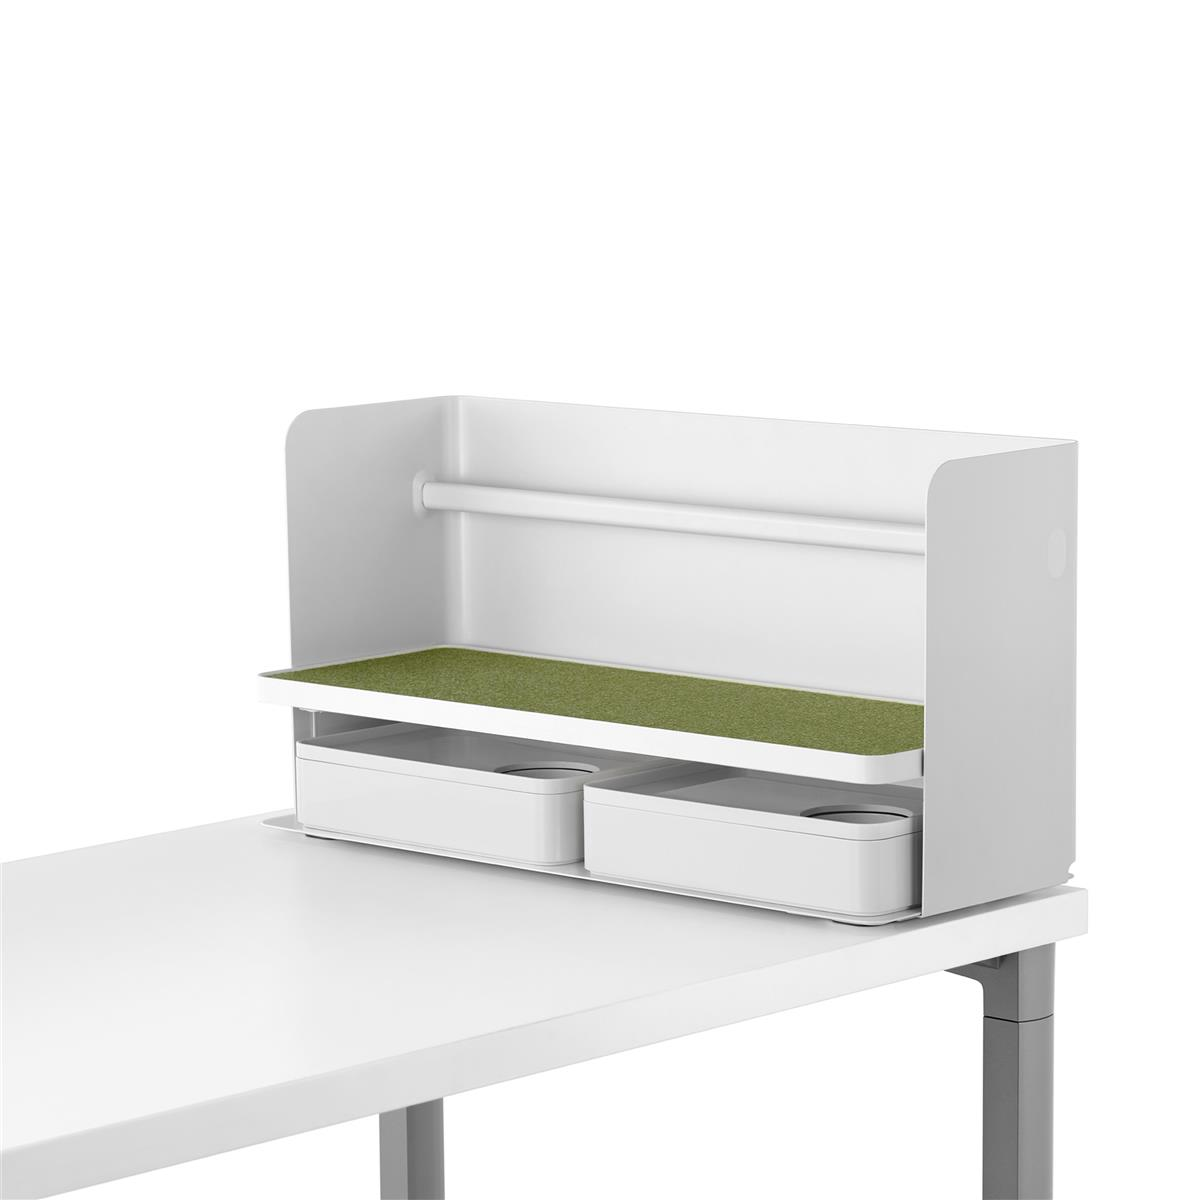 Ubi Work Tools Organizer - hvit & Hush Pesto